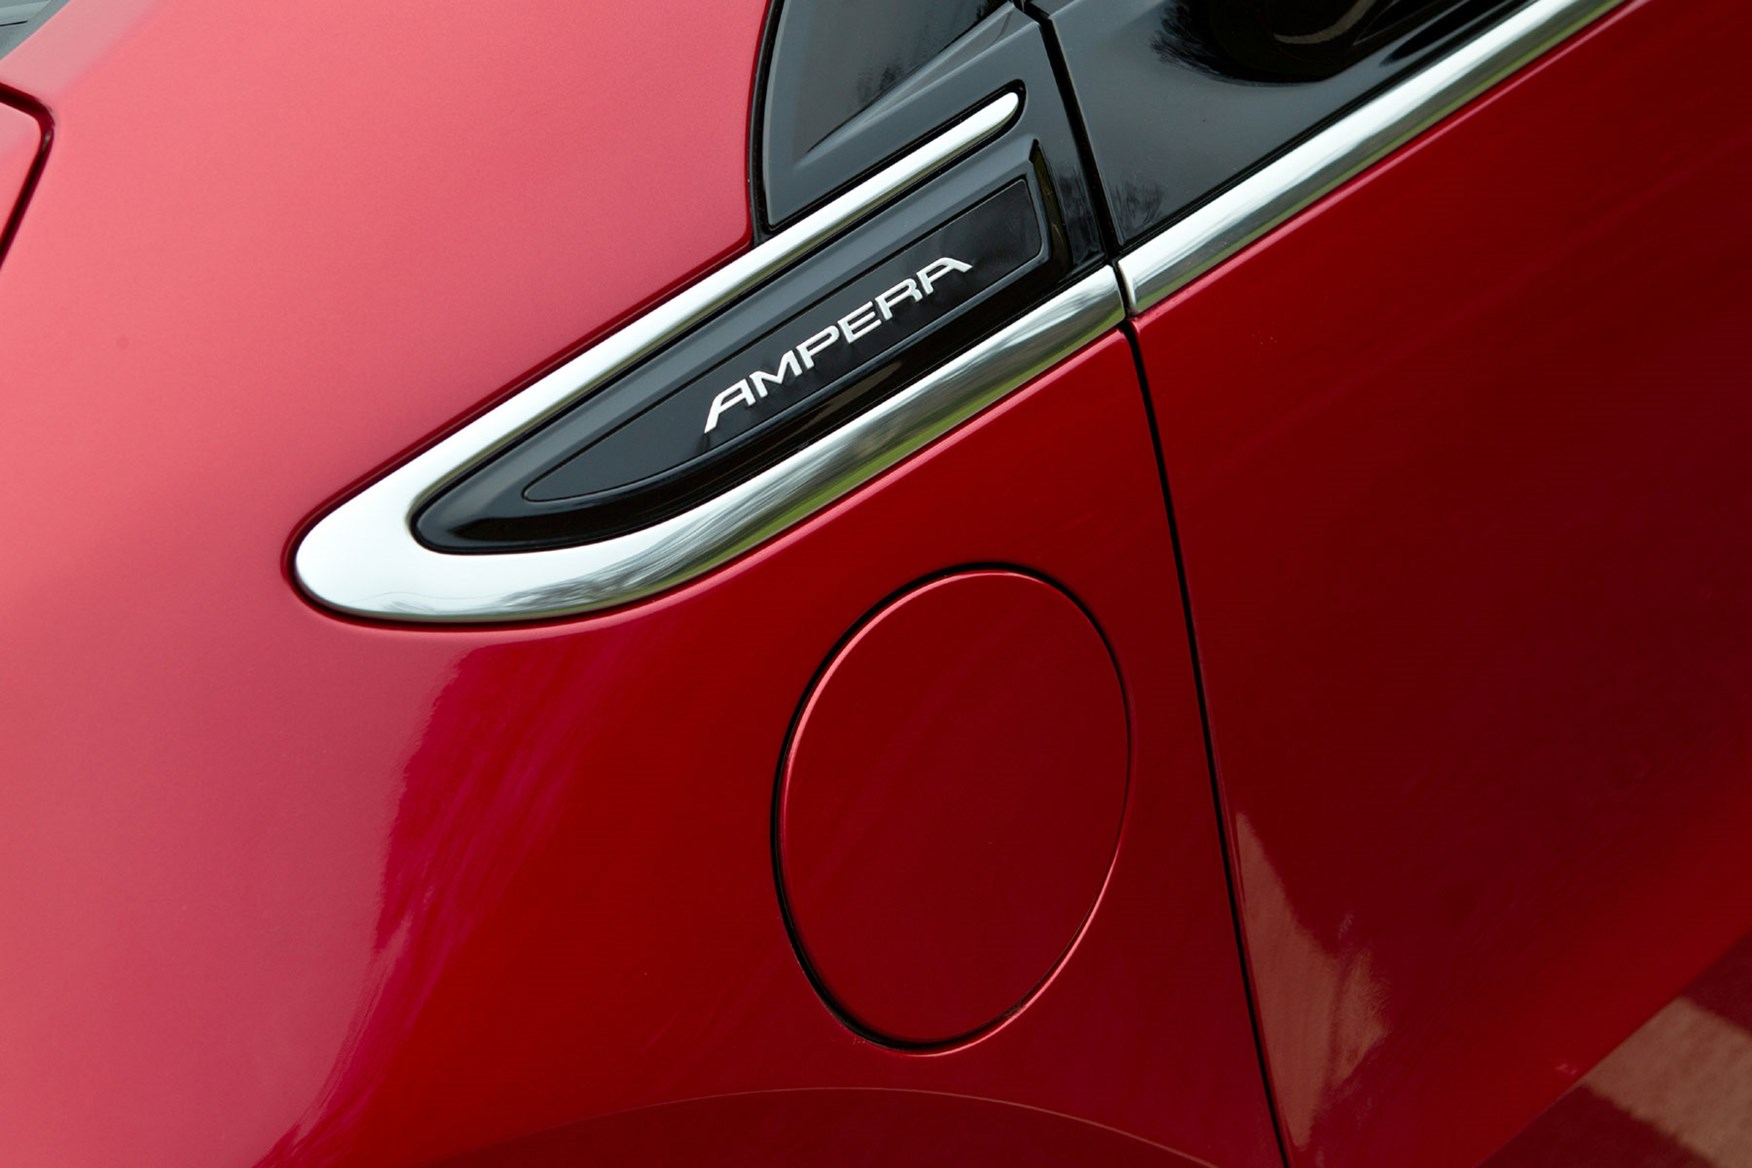 Vauxhall Ampera charge port cover